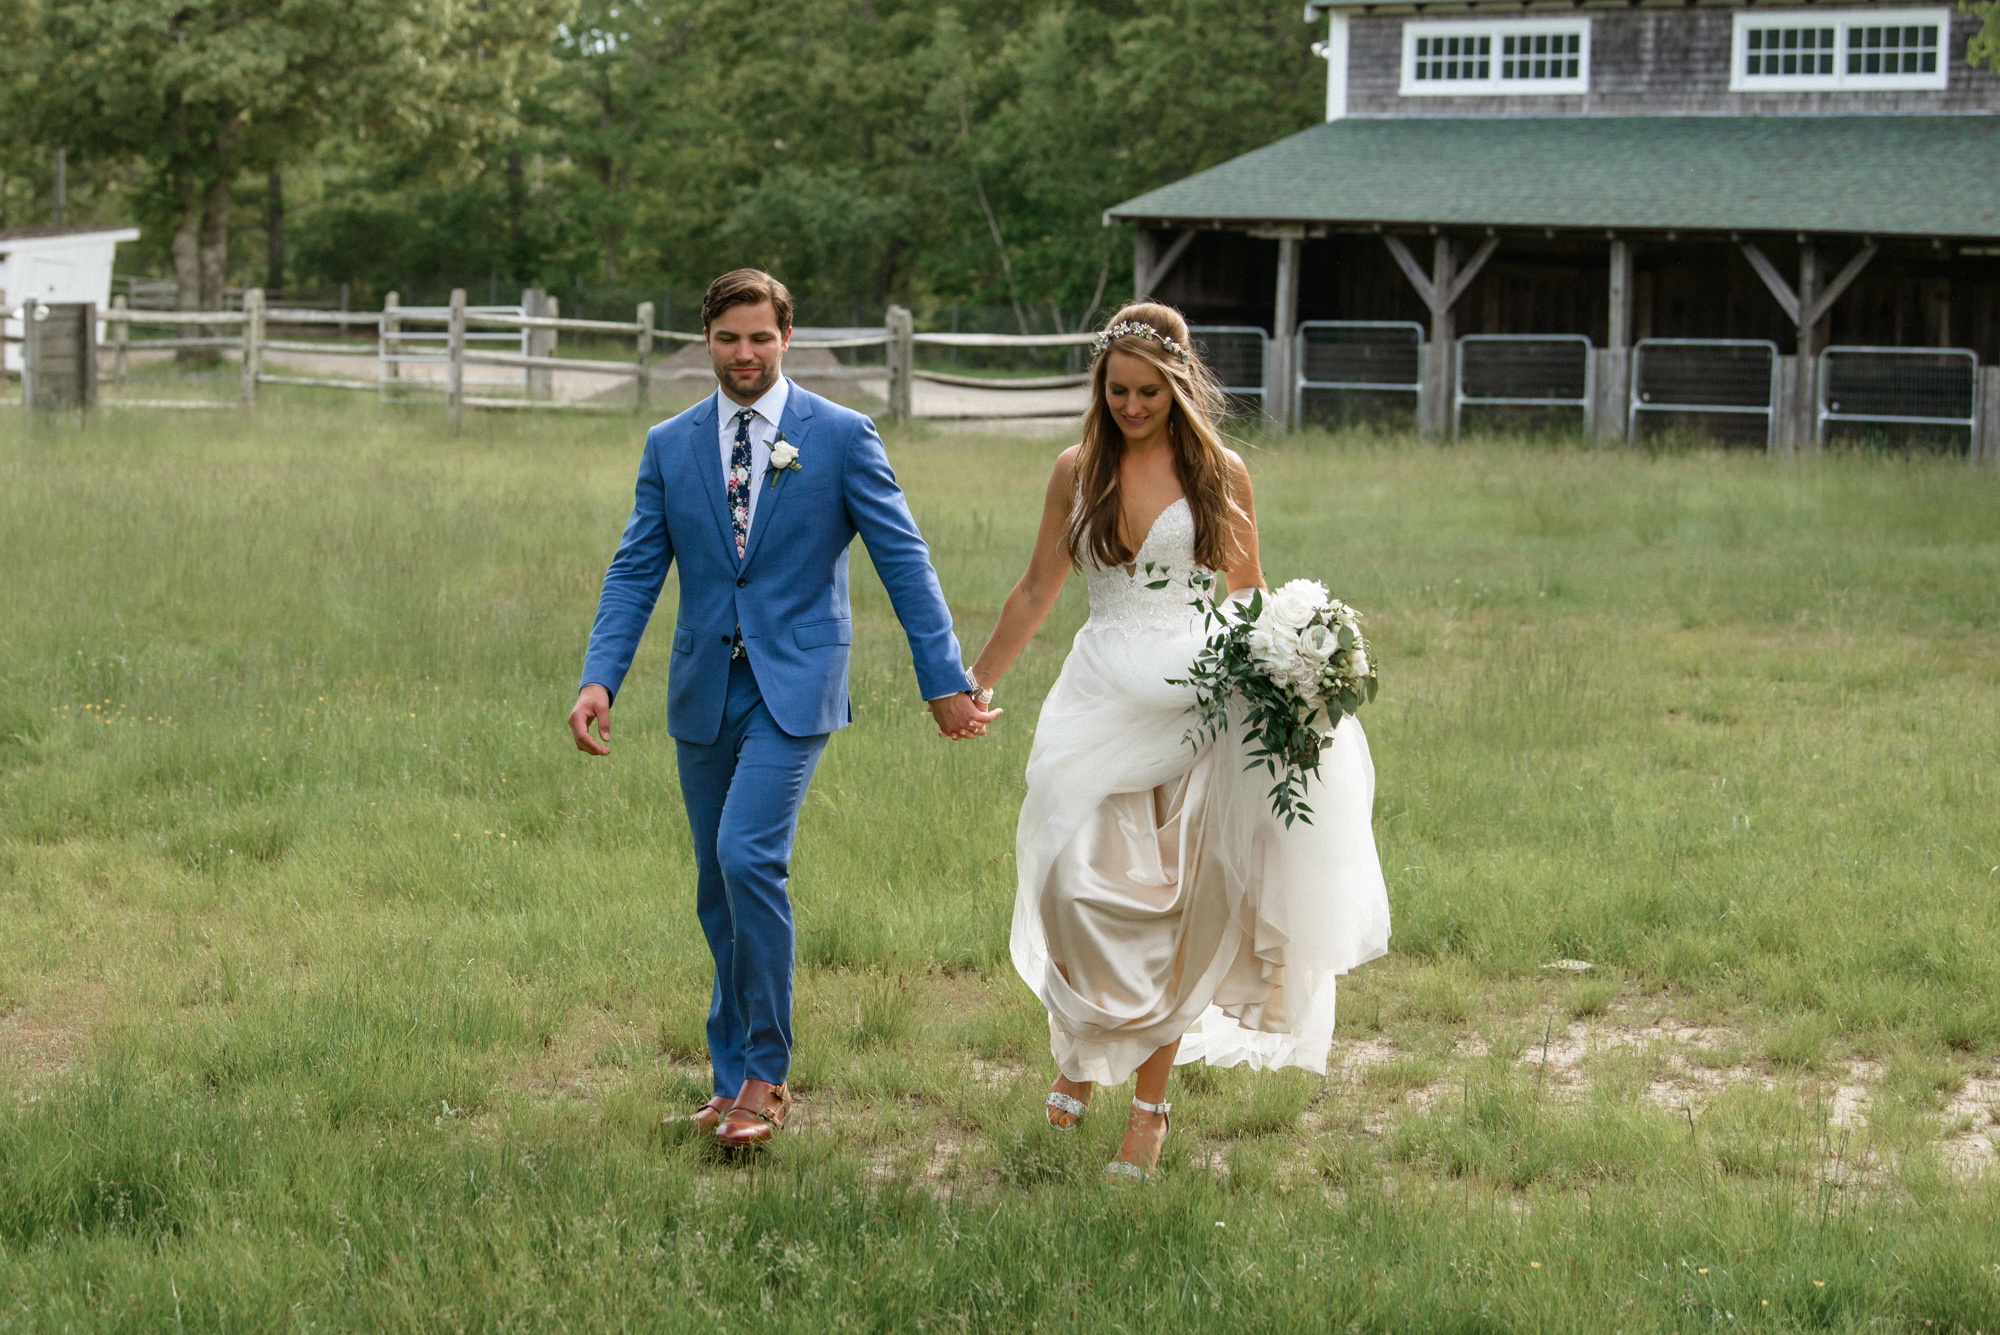 A bride and groom walk hand in hand in a field at the Martha's Vineyard Agricultural Hall in West Tisbury photo by David Welch Photography